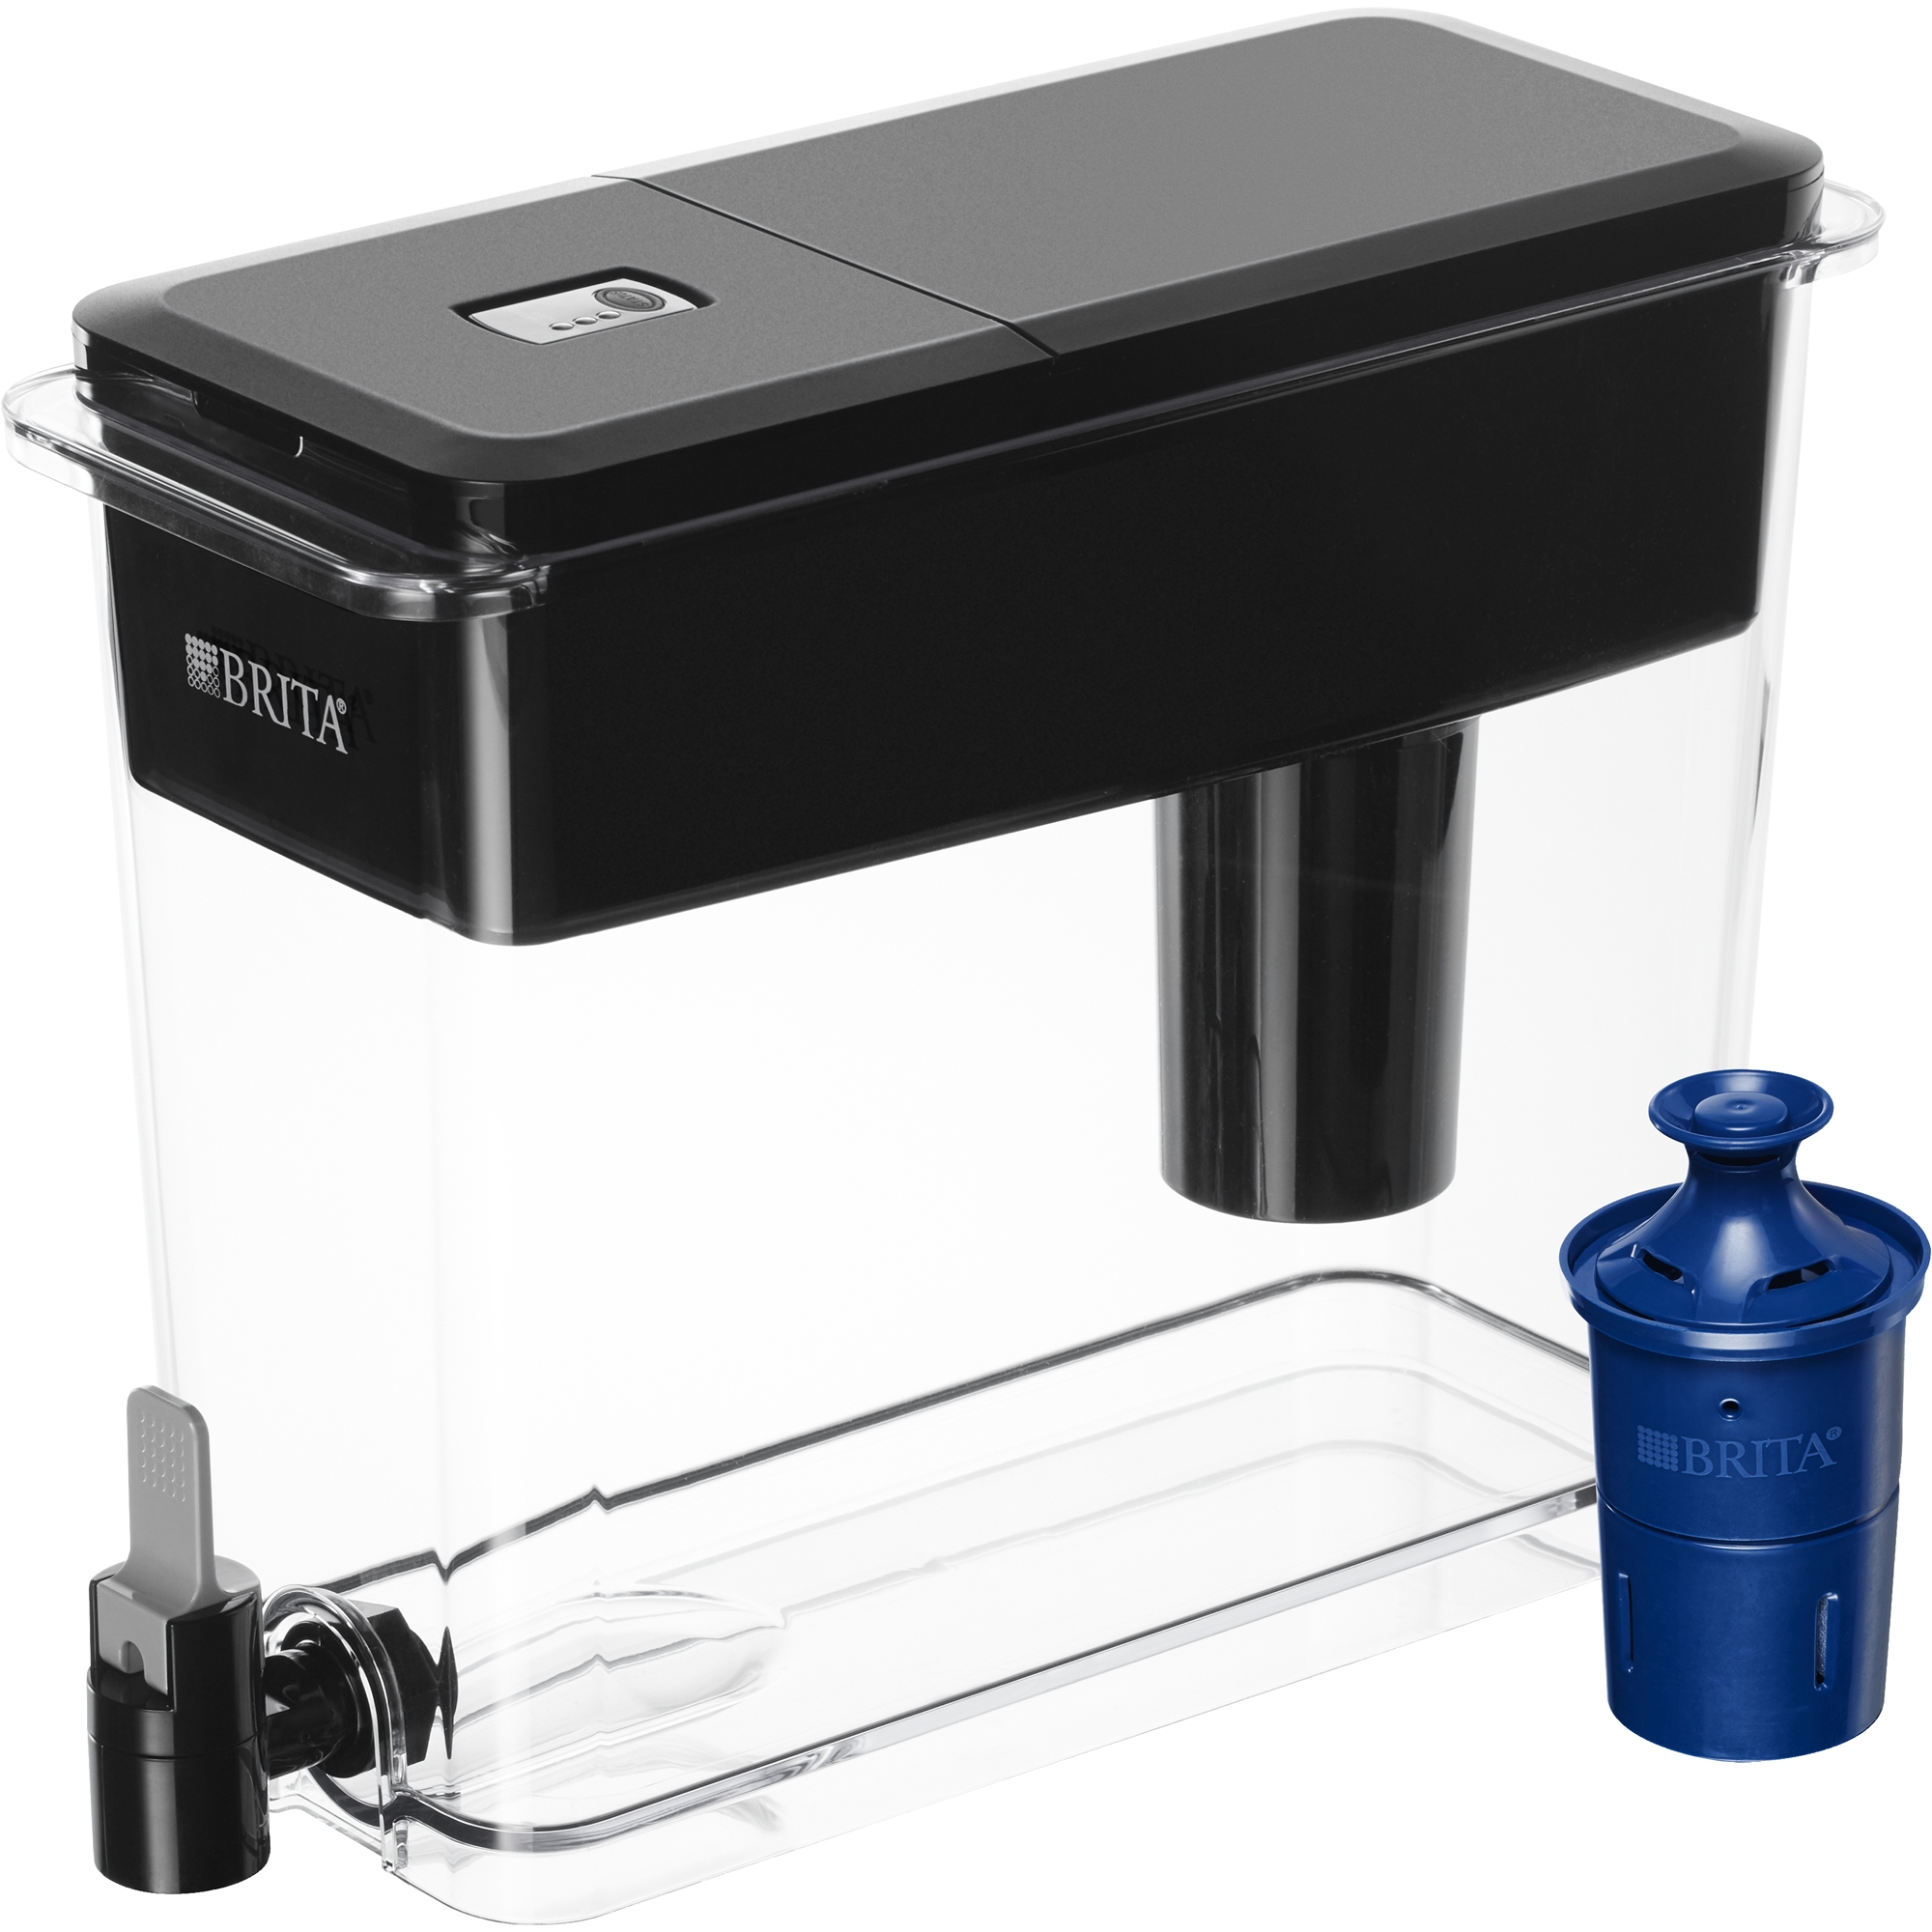 Brita Large UltraMax Water Dispenser with 1 Longlast Filter - BPA Free - Jet Black - 18 Cup